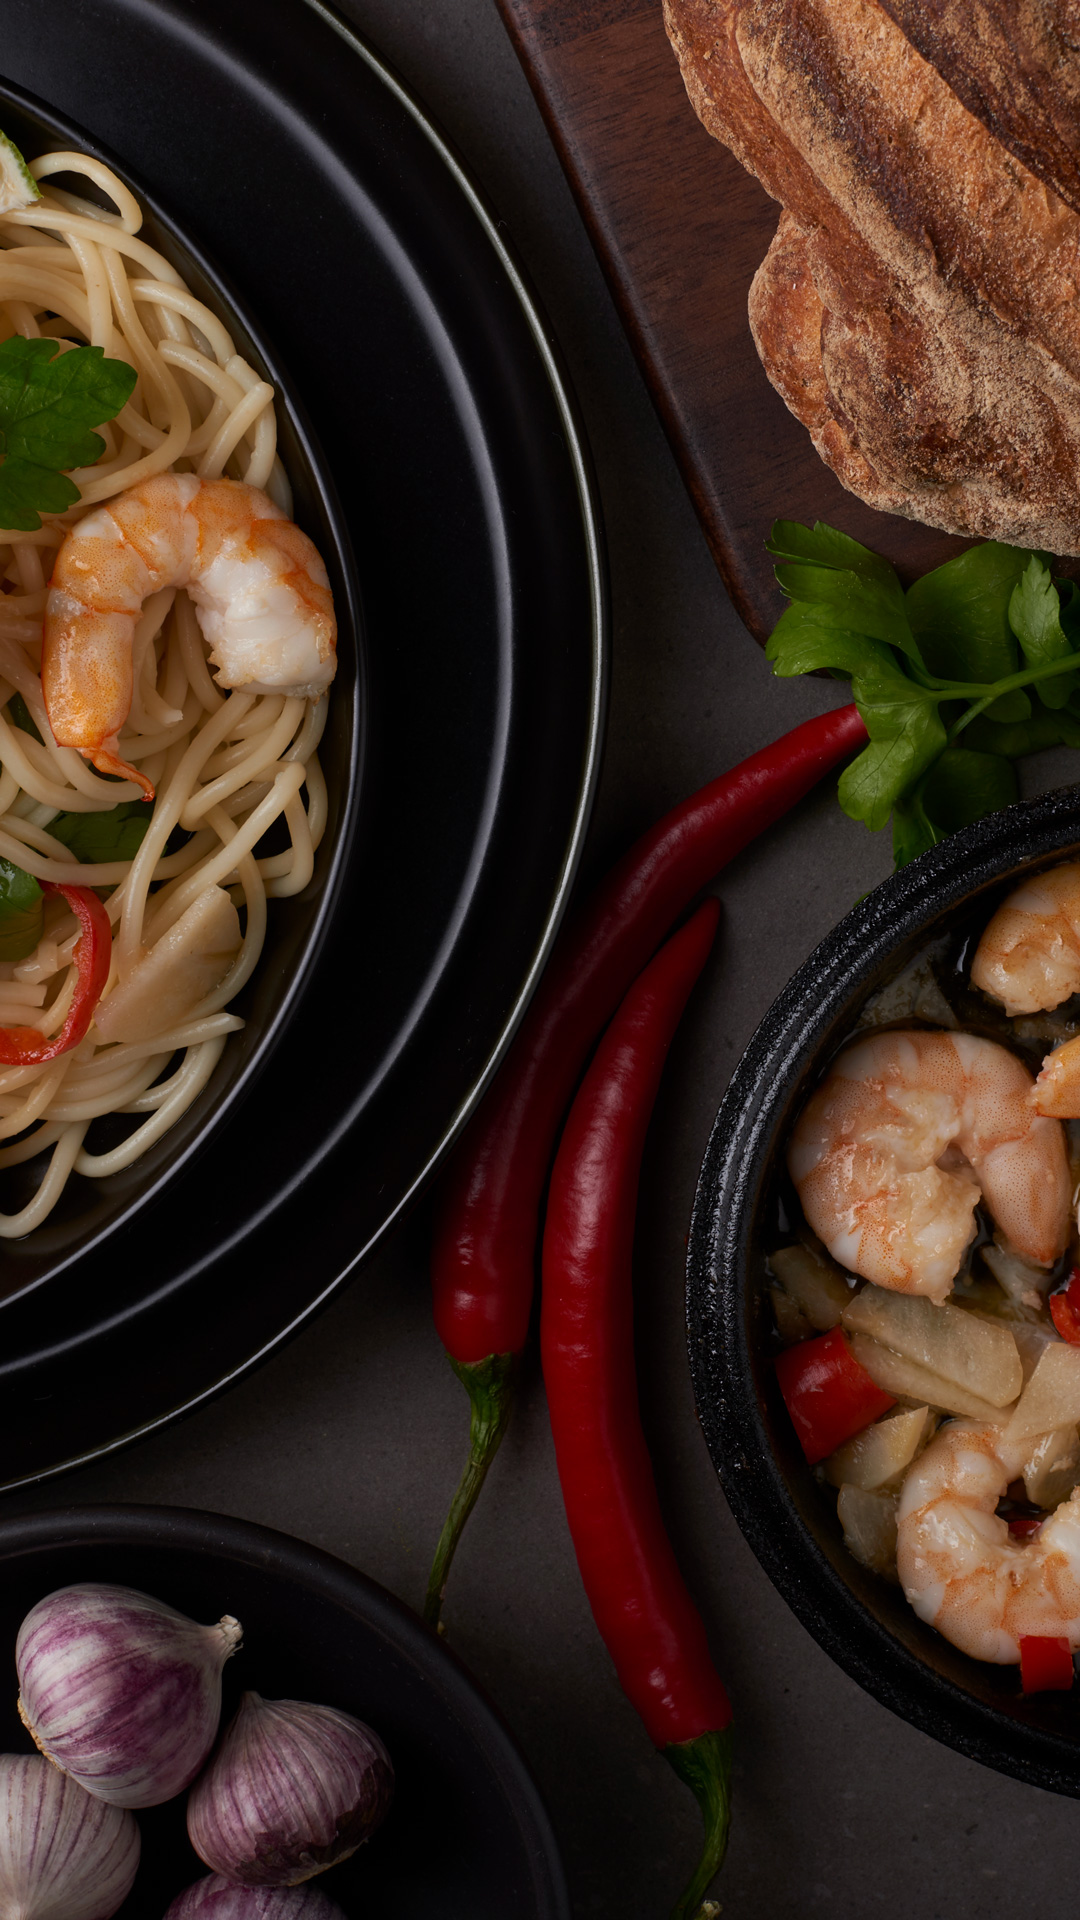 Shrimp pasta - food photography